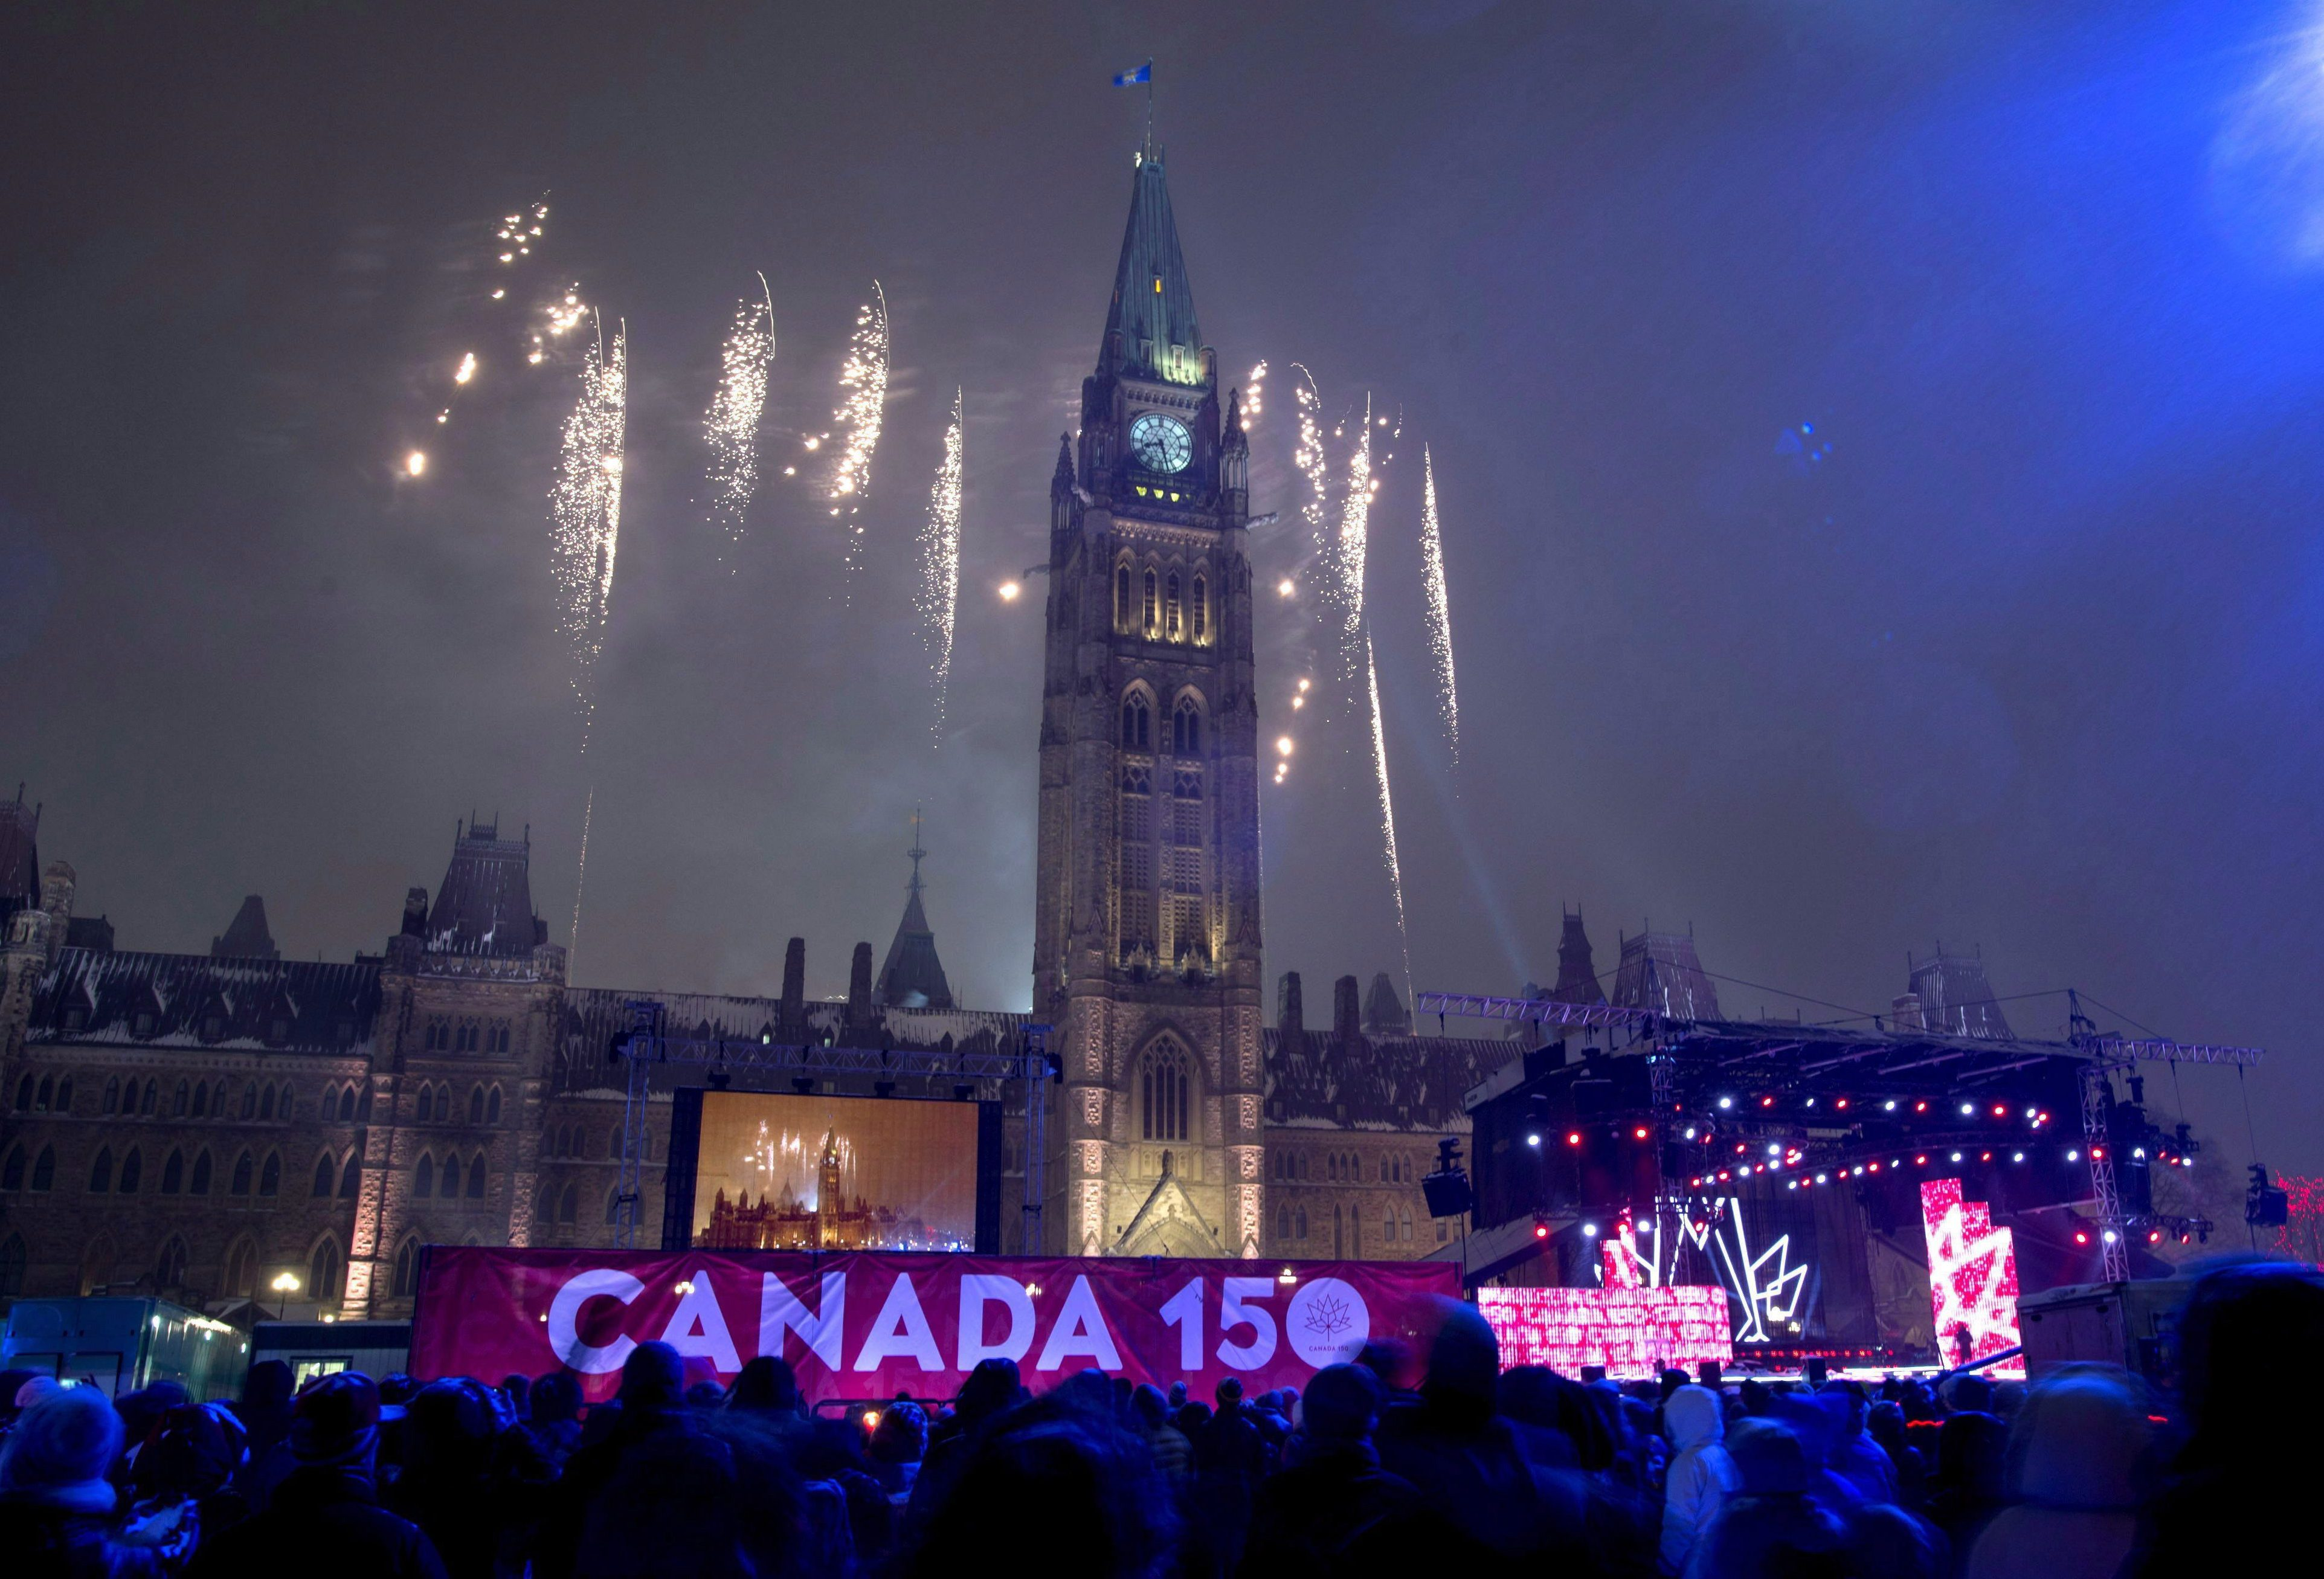 Cold weather threatens plans for Canada 150 closing on Parliament Hill